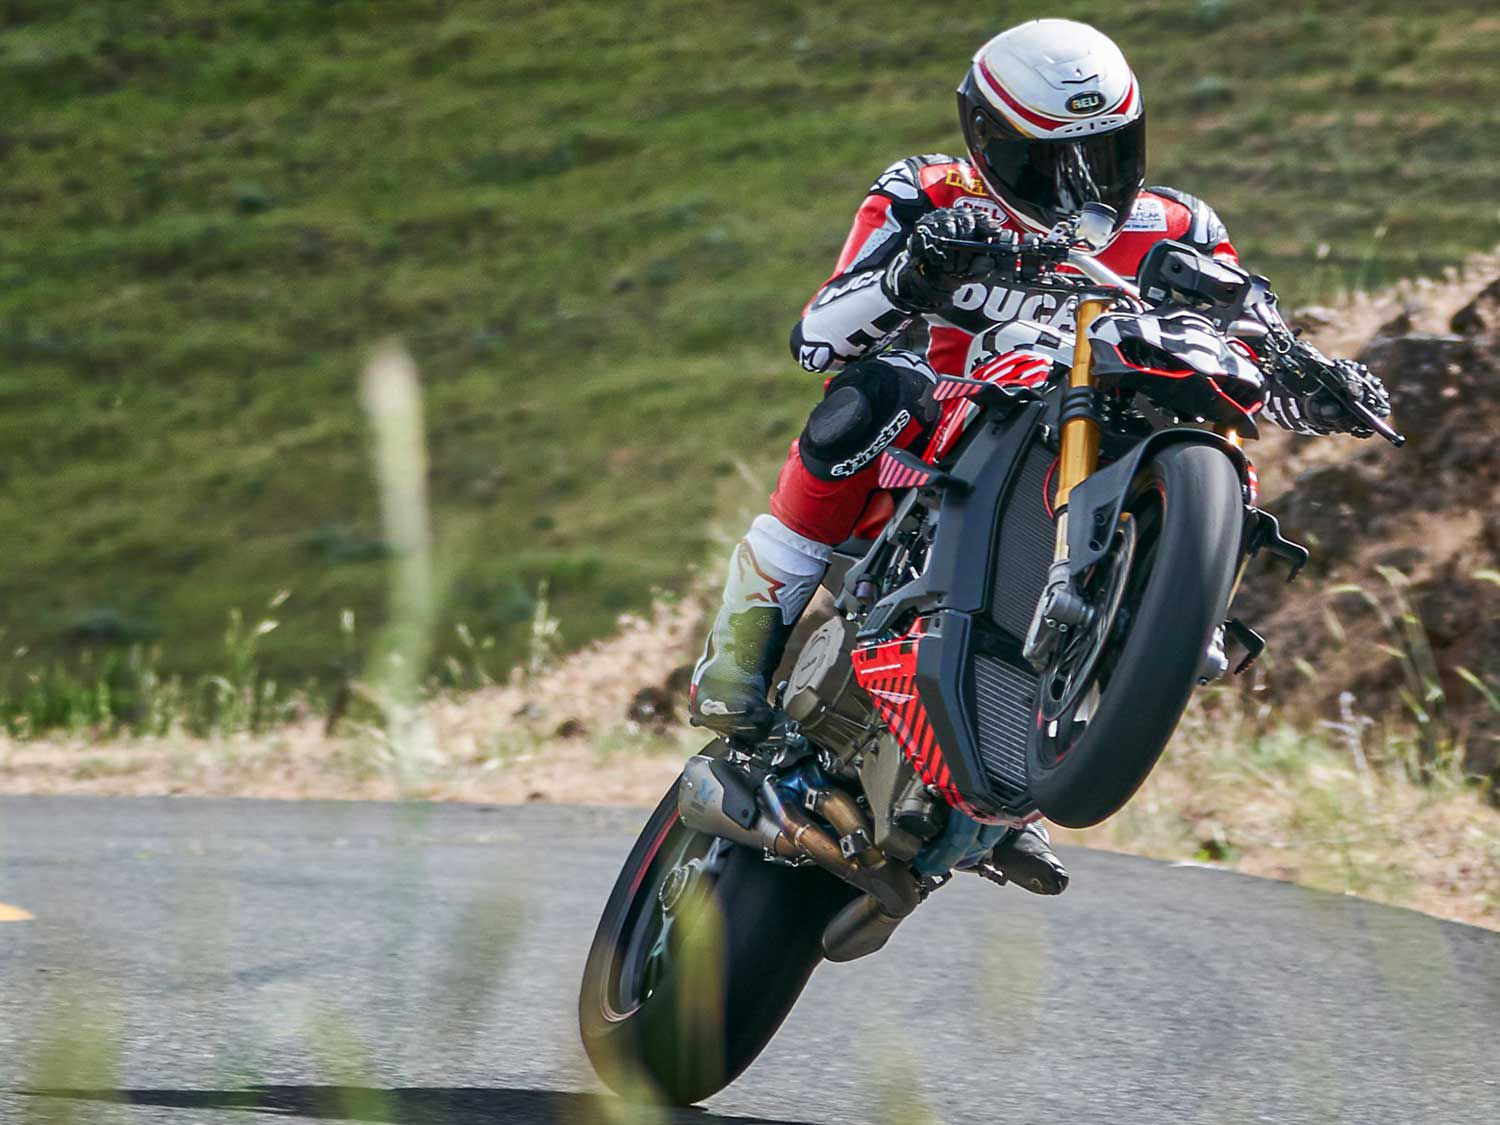 2020 Ducati Streetfighter V4 Prototype First Look